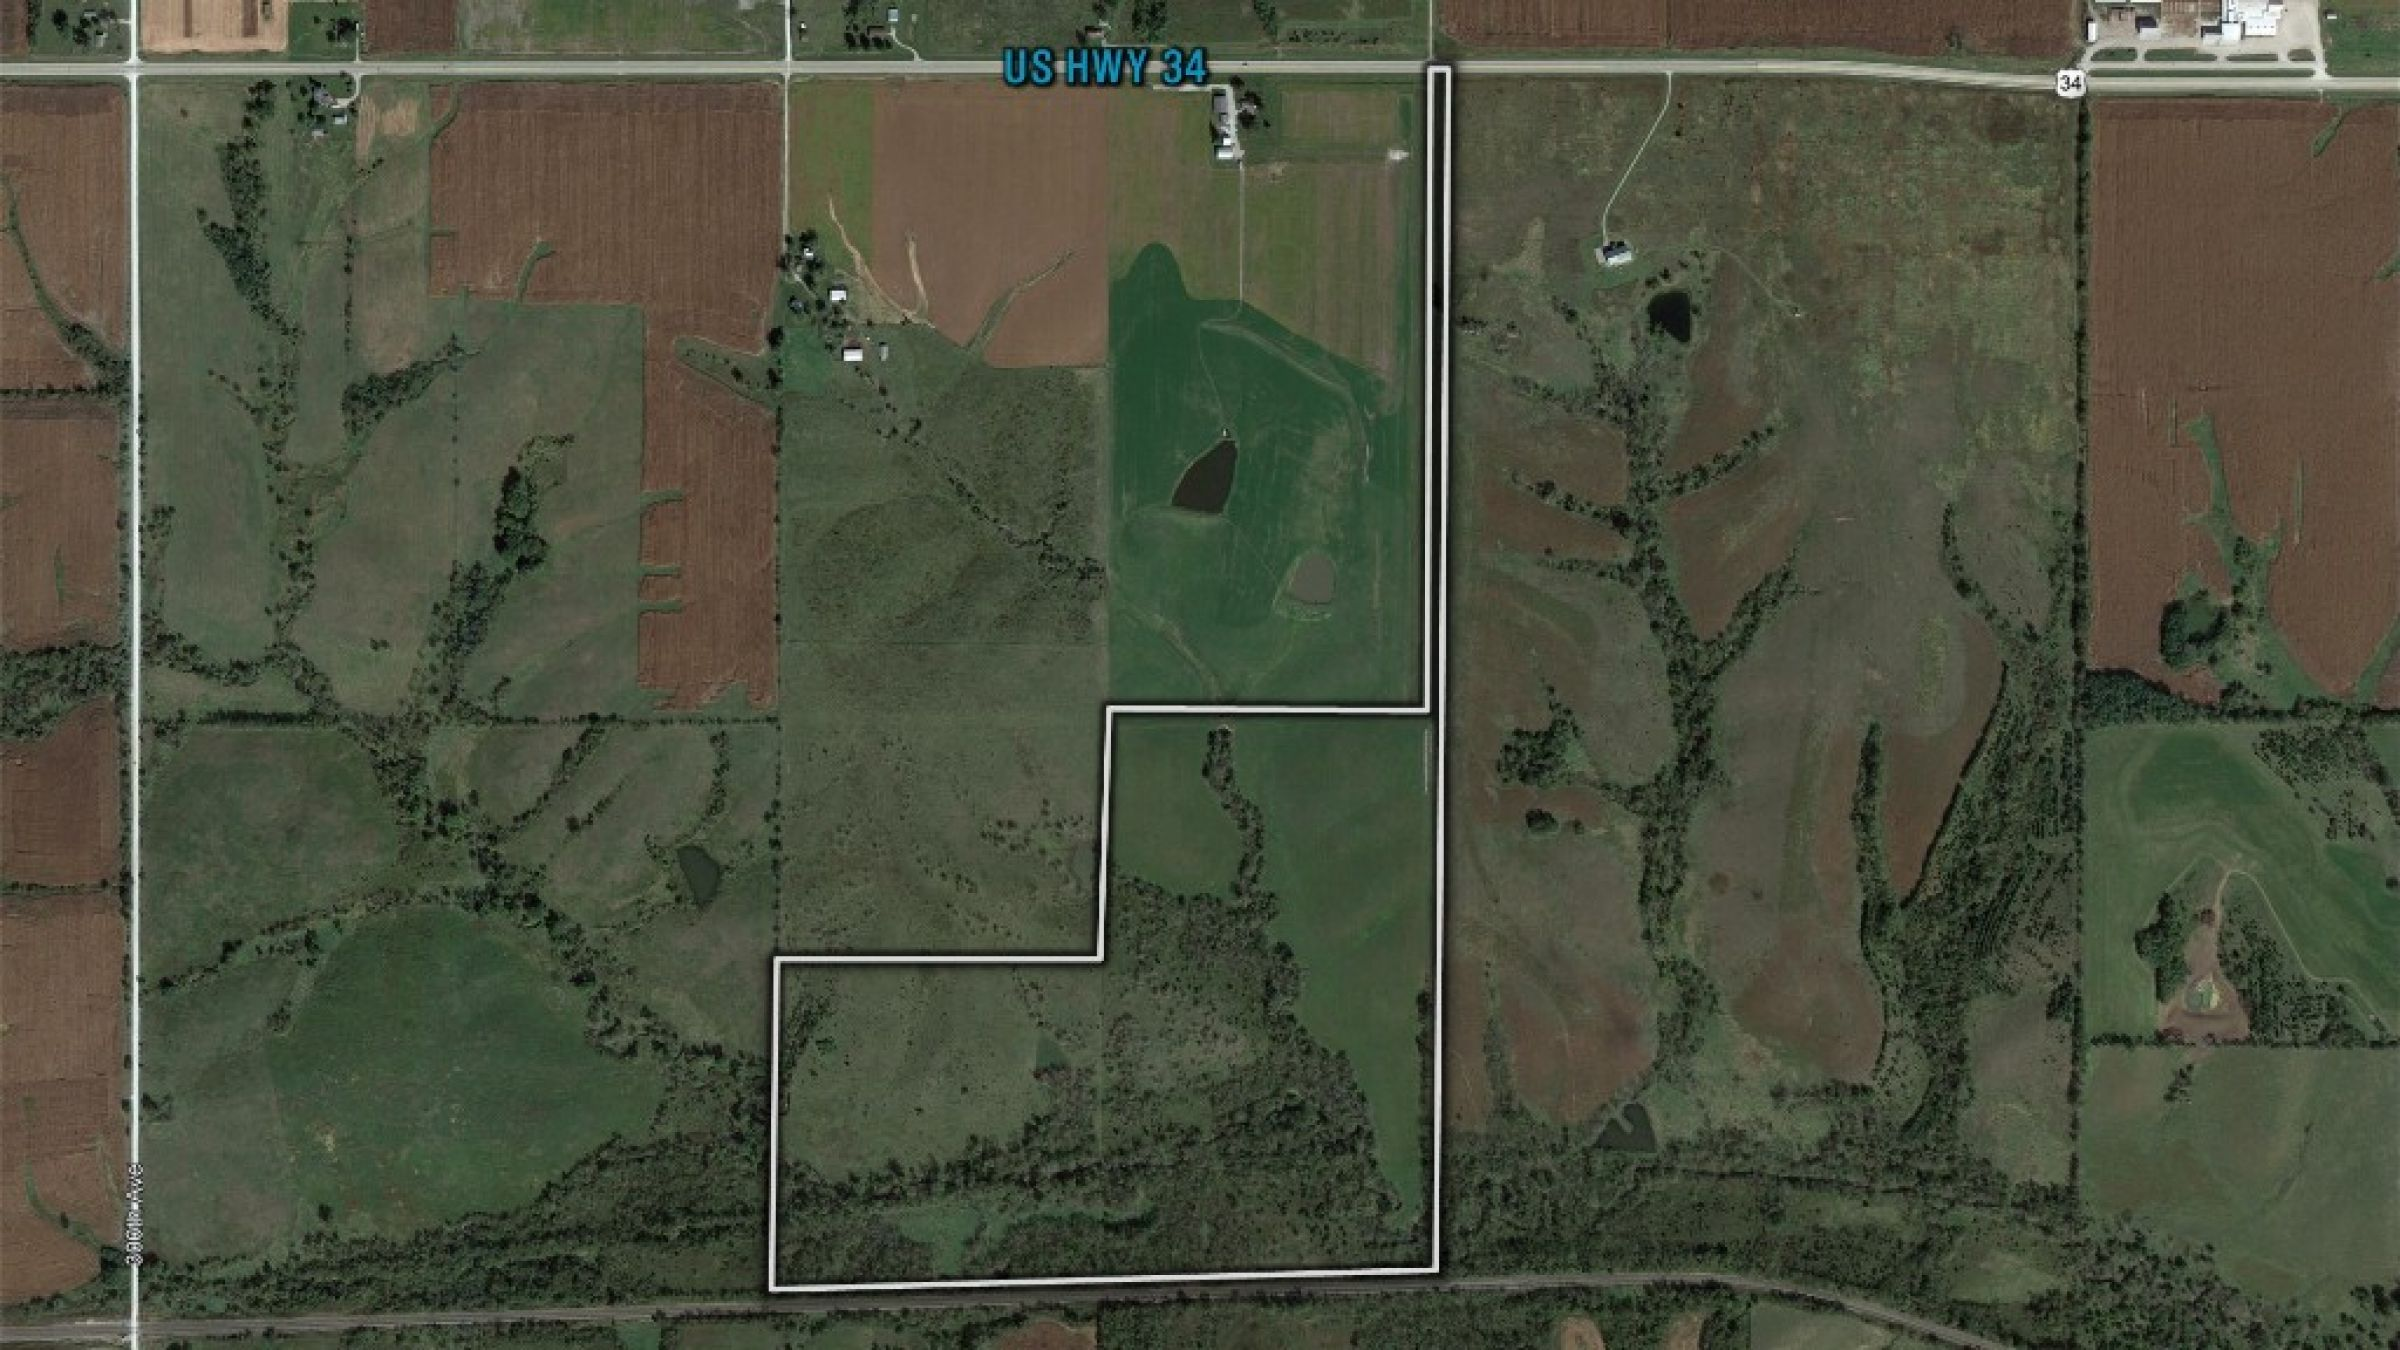 land-lucas-county-iowa-106-acres-listing-number-15133-6-2020-09-04-182130.jpg